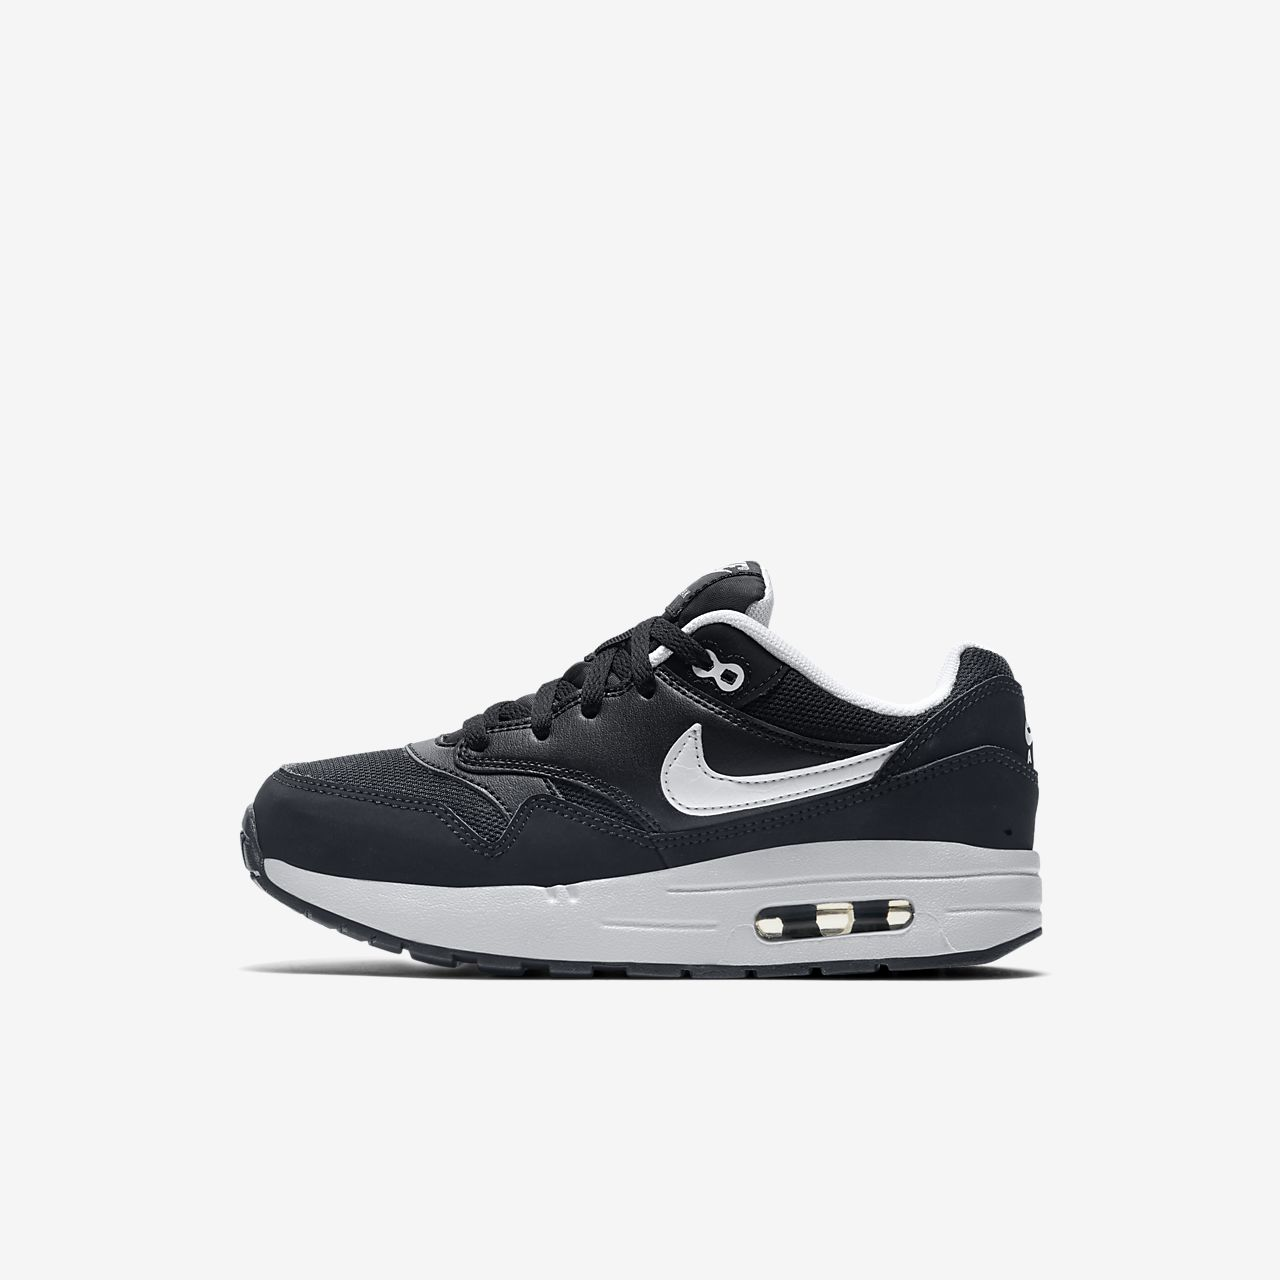 official photos 9790e 3343d ... Nike Air Max 1 Younger Kids  Shoe